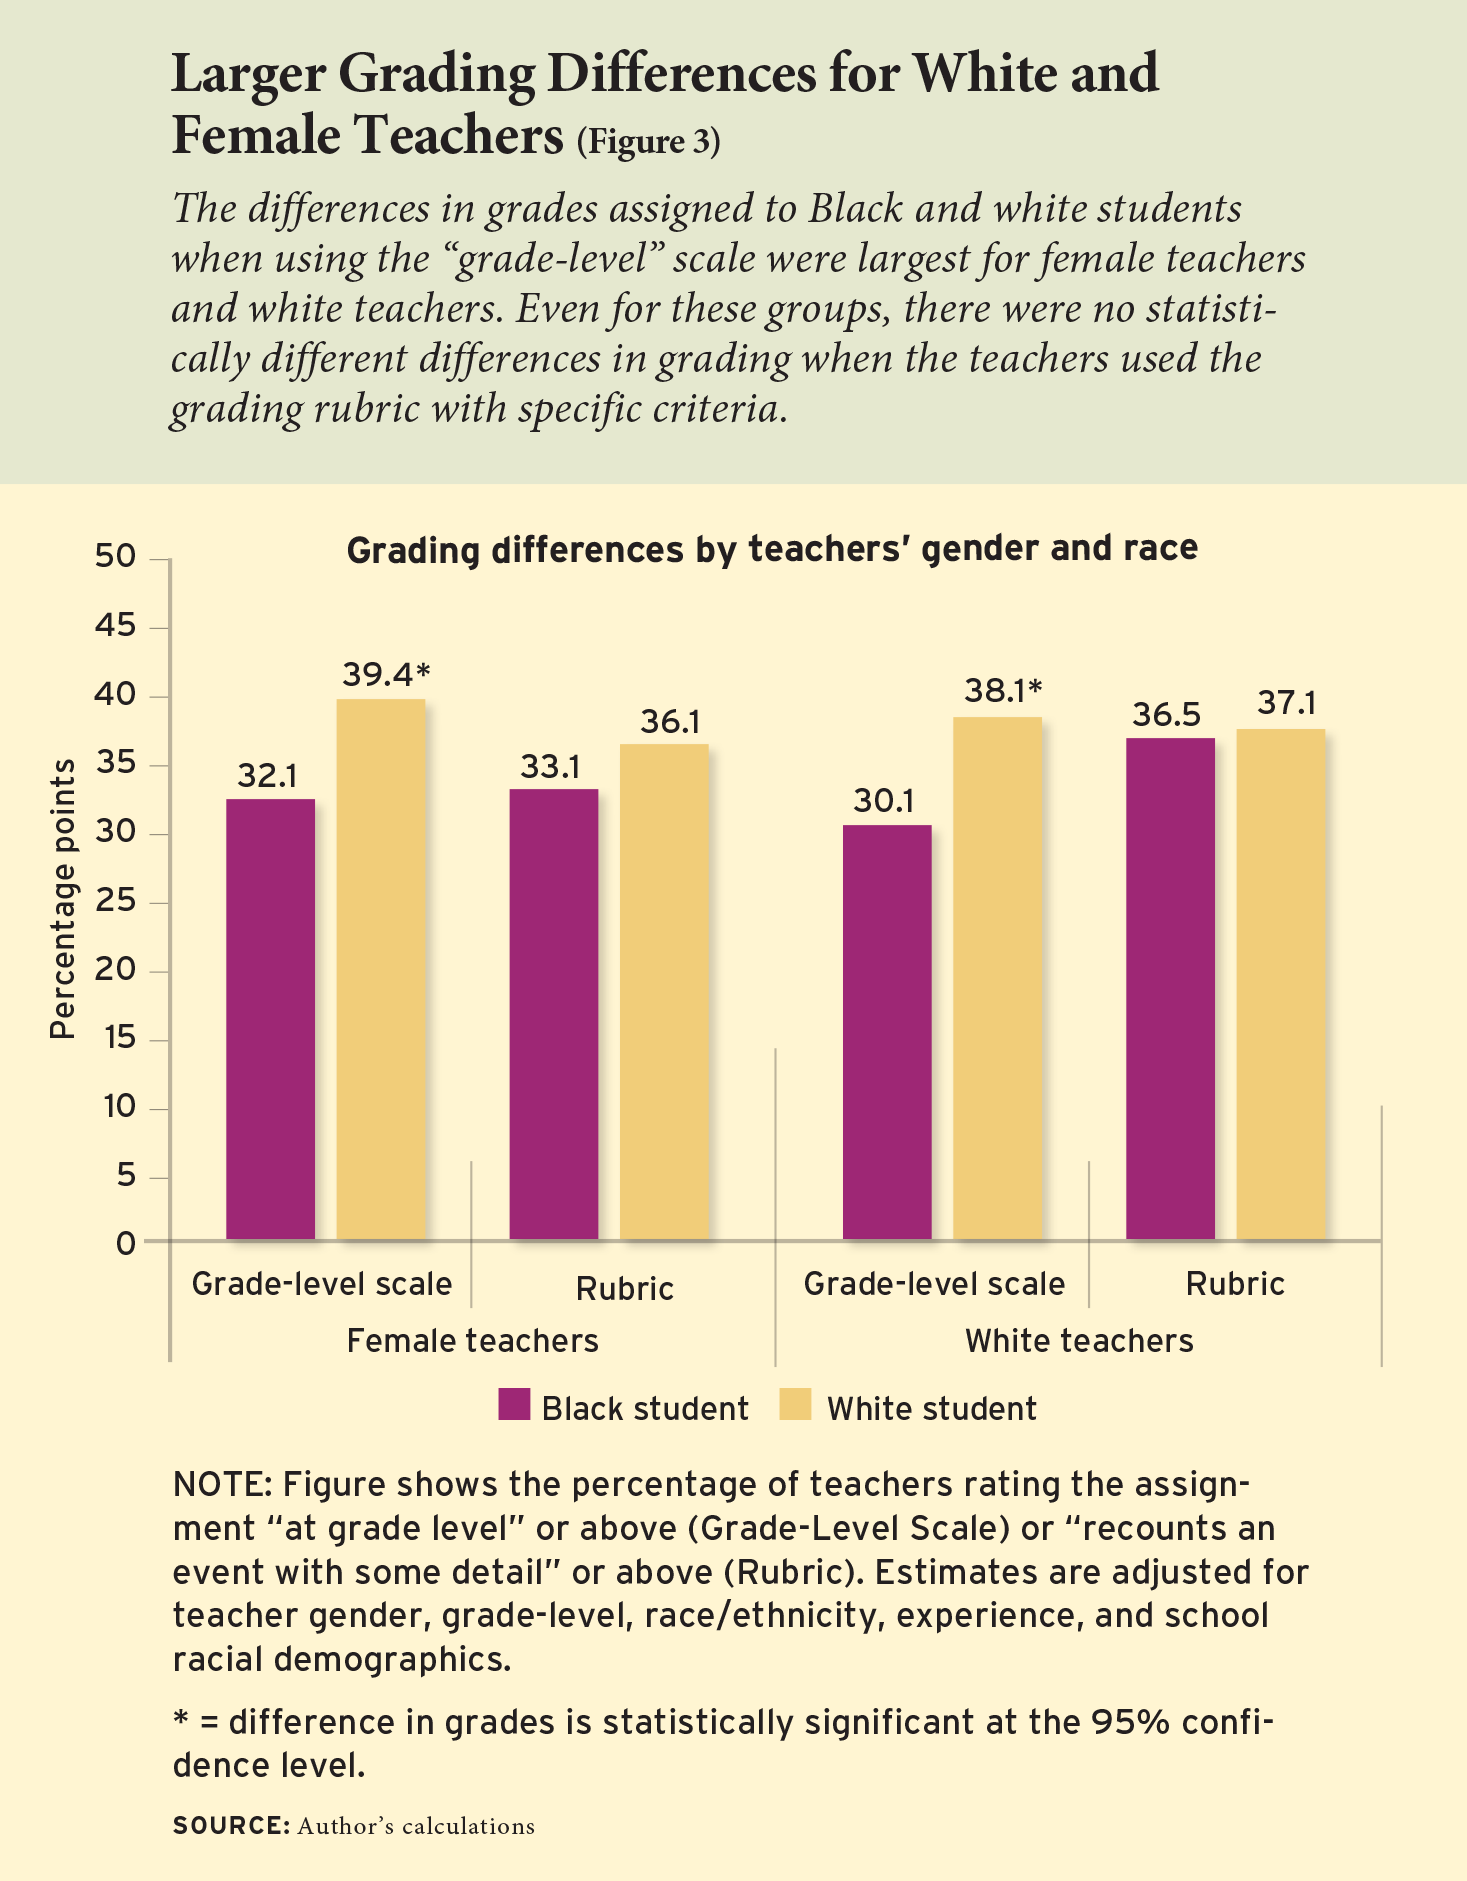 Figure 3: Larger Grading Differences for White and Female Teachers